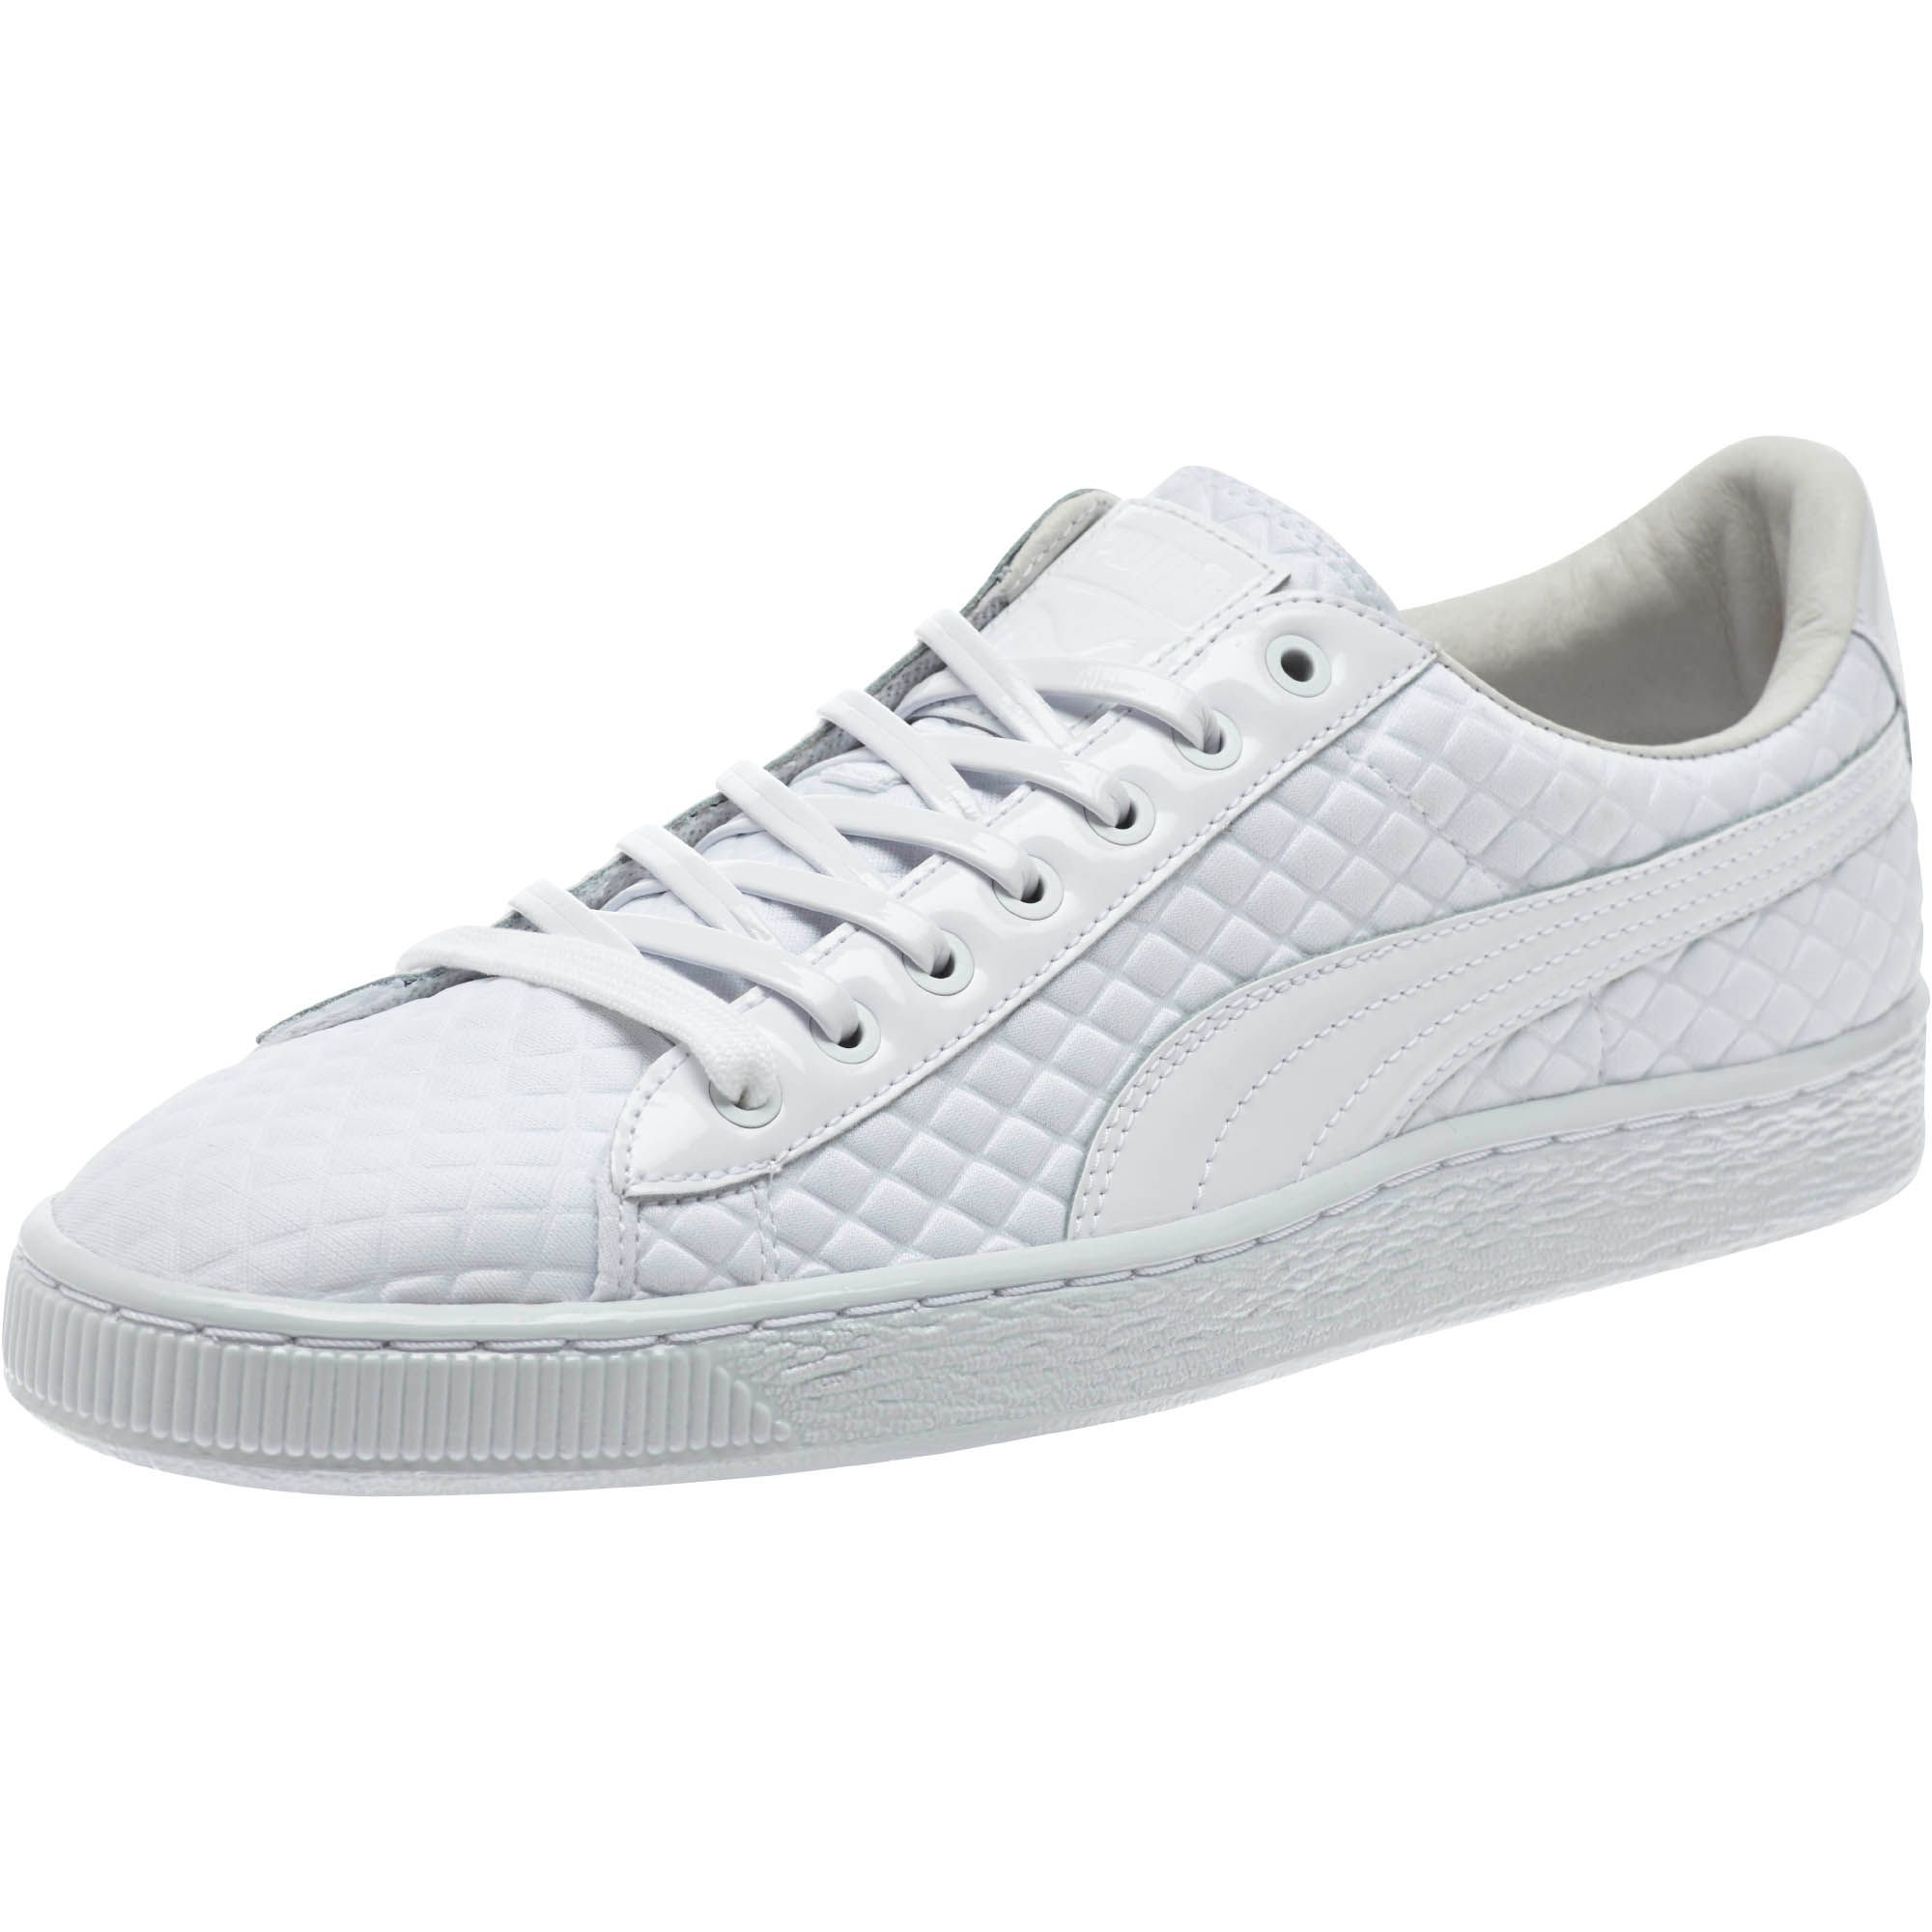 ... Lyst - Puma Meek Mill Dreamchasers Basket Mens Sneakers in B ... cbacf3e9a